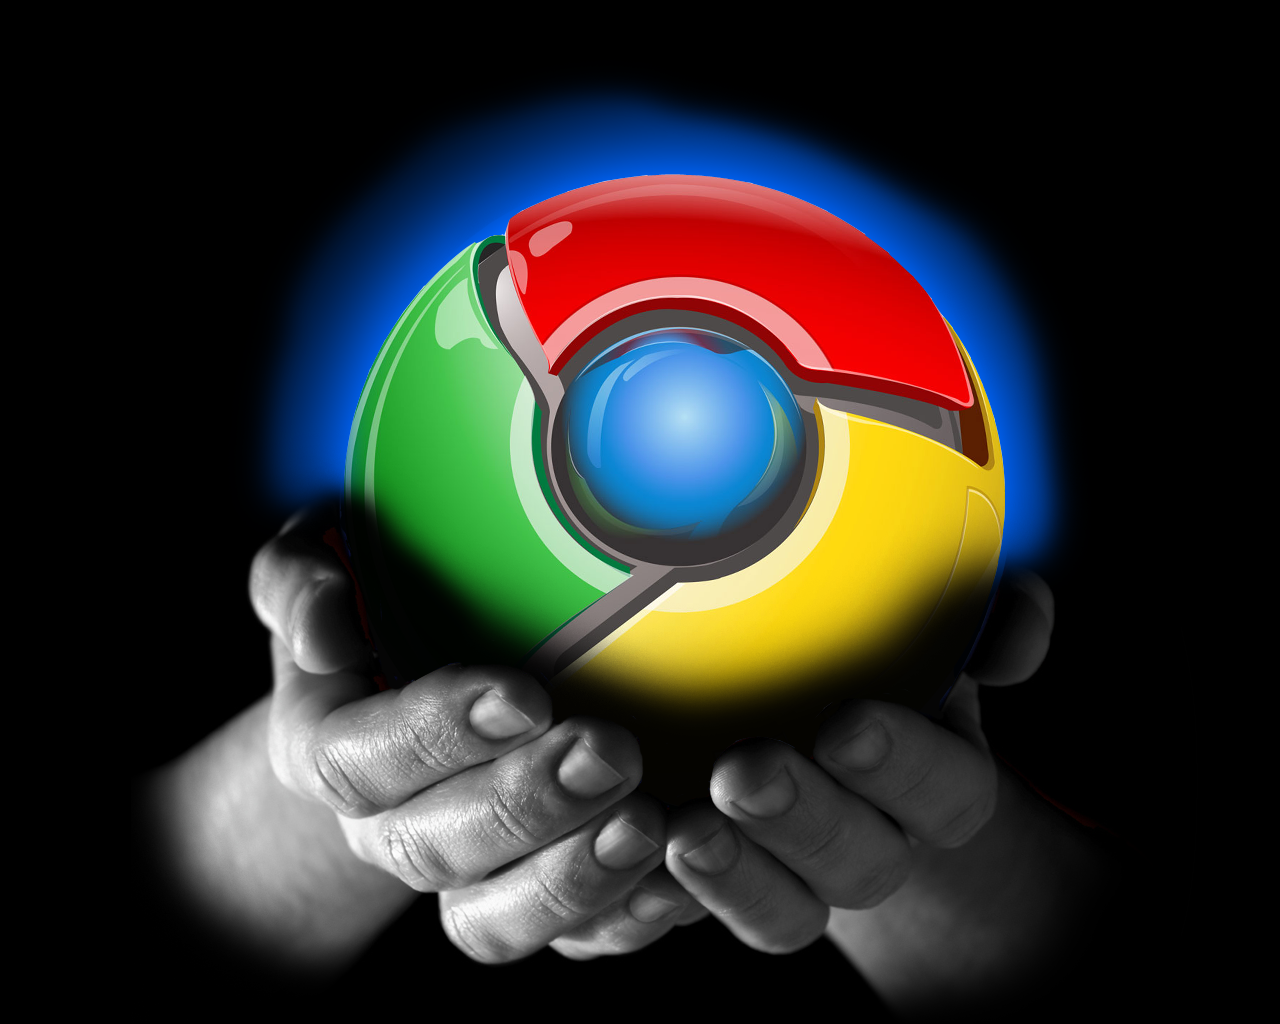 DPA15: Google Chrome, 1280x1024 px, by Marva Lung